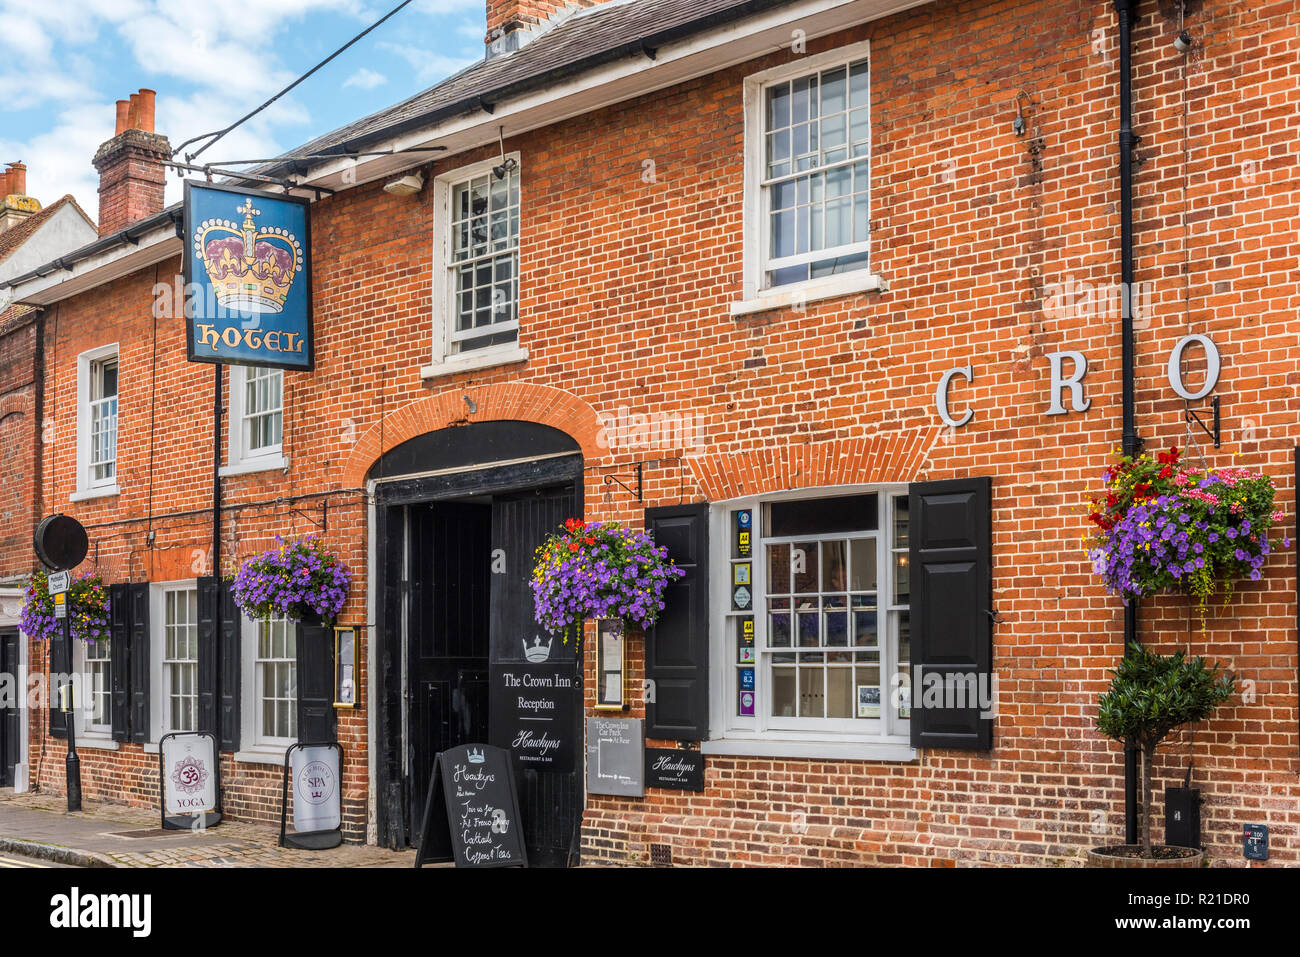 Crown Inn Hotel, Old Amersham High Street, Amersham, Buckinghamshire, England - Stock Image